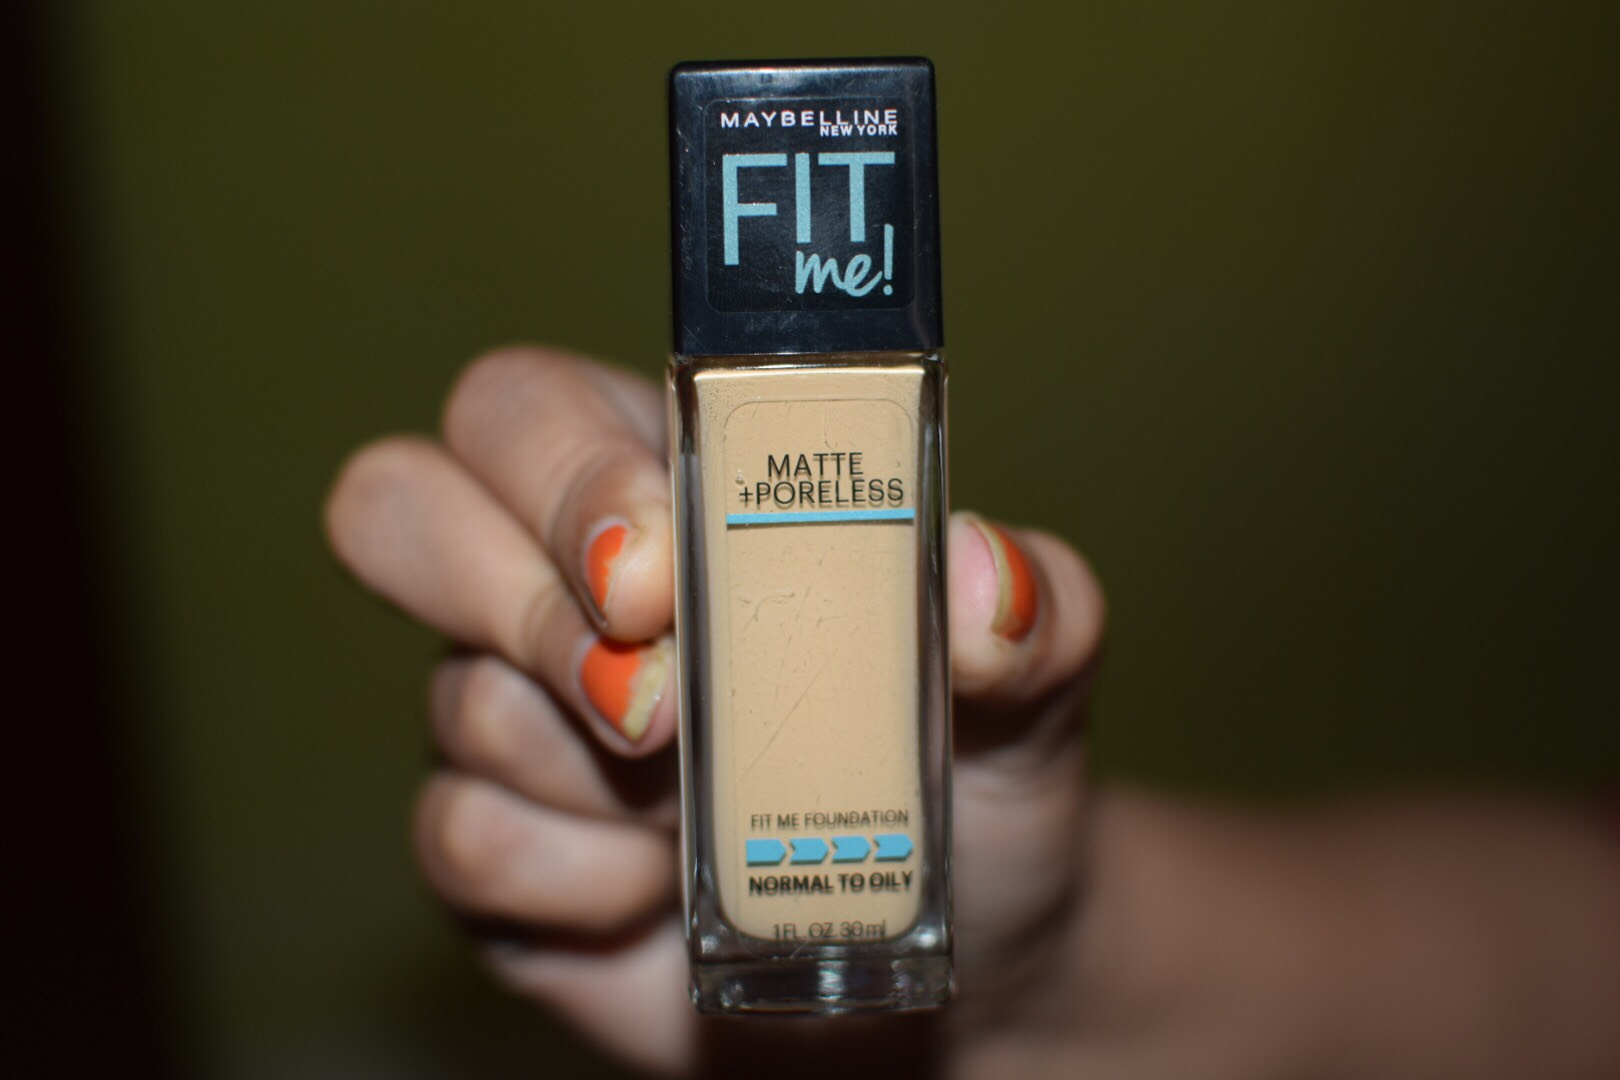 Maybelline Fit Me Matte + Poreless Foundation & Concealer Review